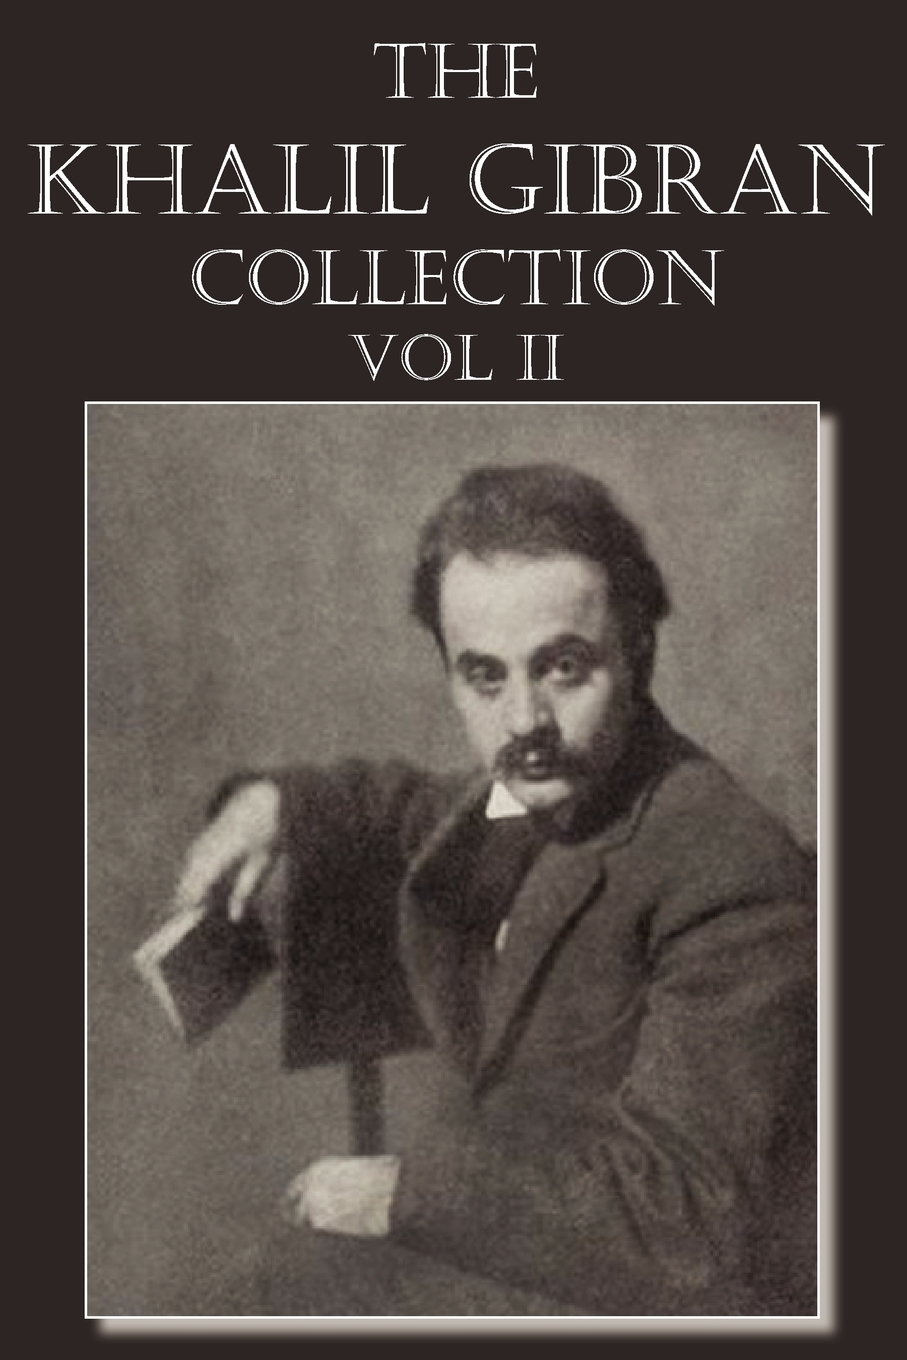 Kahlil Gibran The Khalil Gibran Collection Volume II kahlil gibran the forerunner his parables and poems